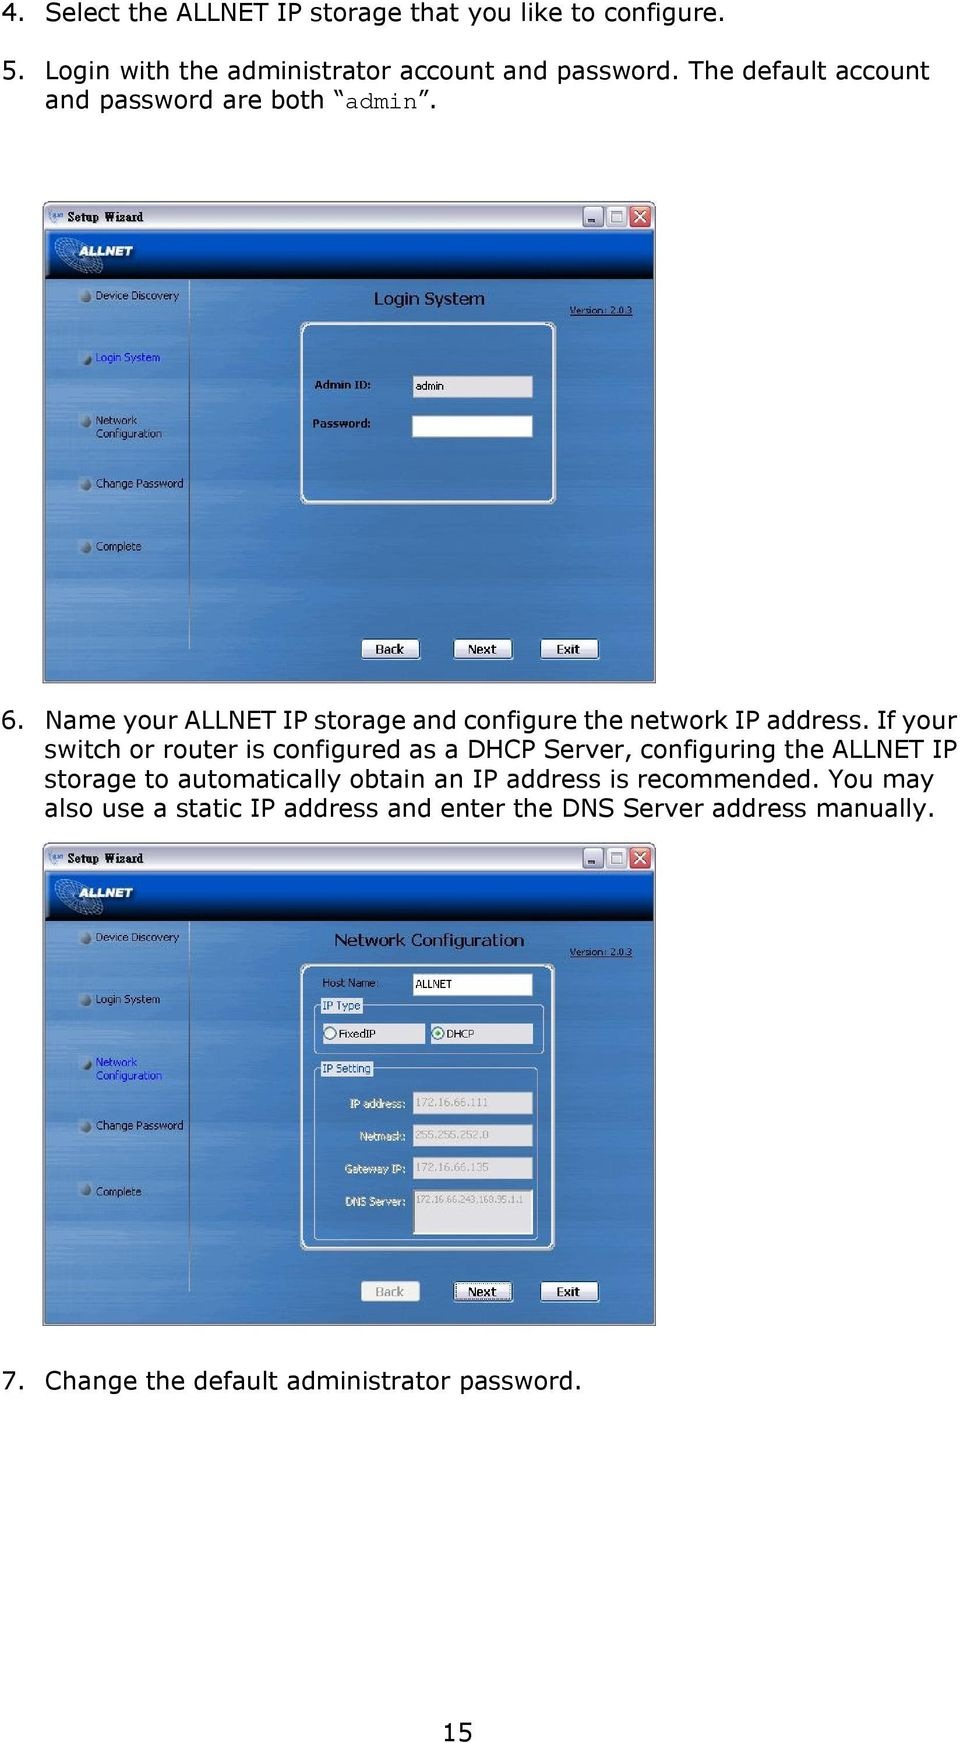 If your switch or router is configured as a DHCP Server, configuring the ALLNET IP storage to automatically obtain an IP